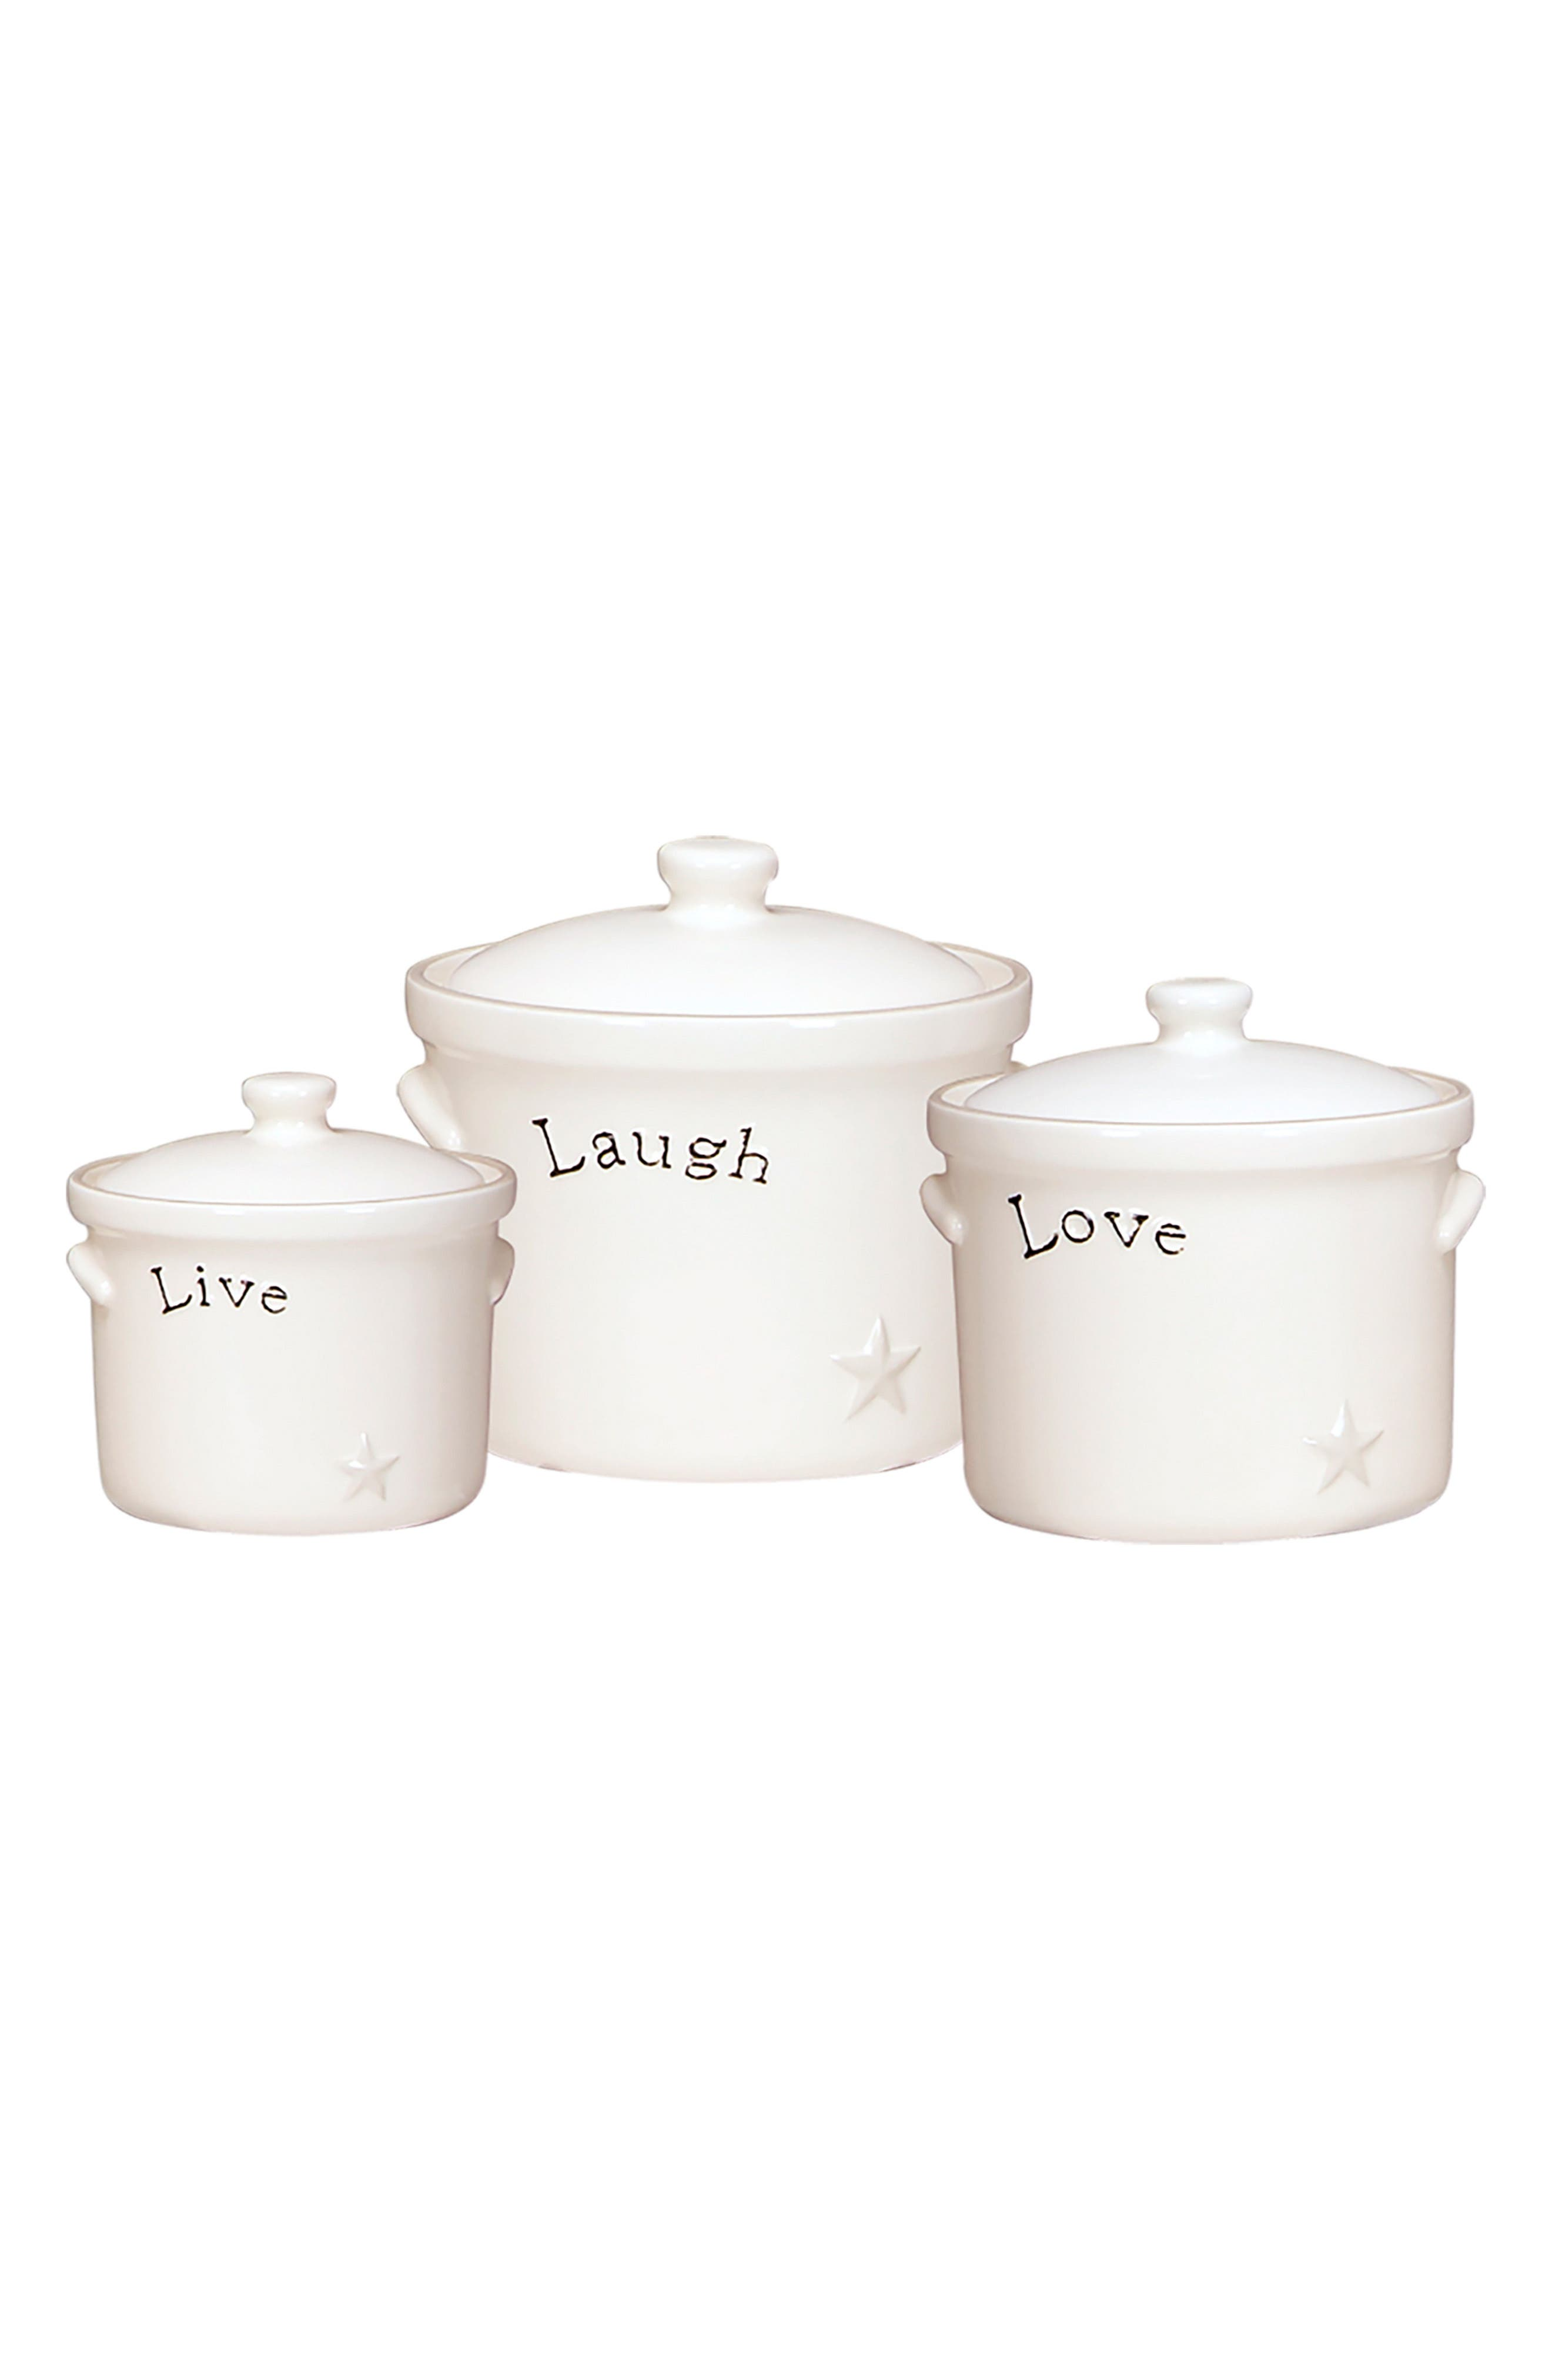 Set of 3 Live Laugh Love Canisters,                             Main thumbnail 1, color,                             White